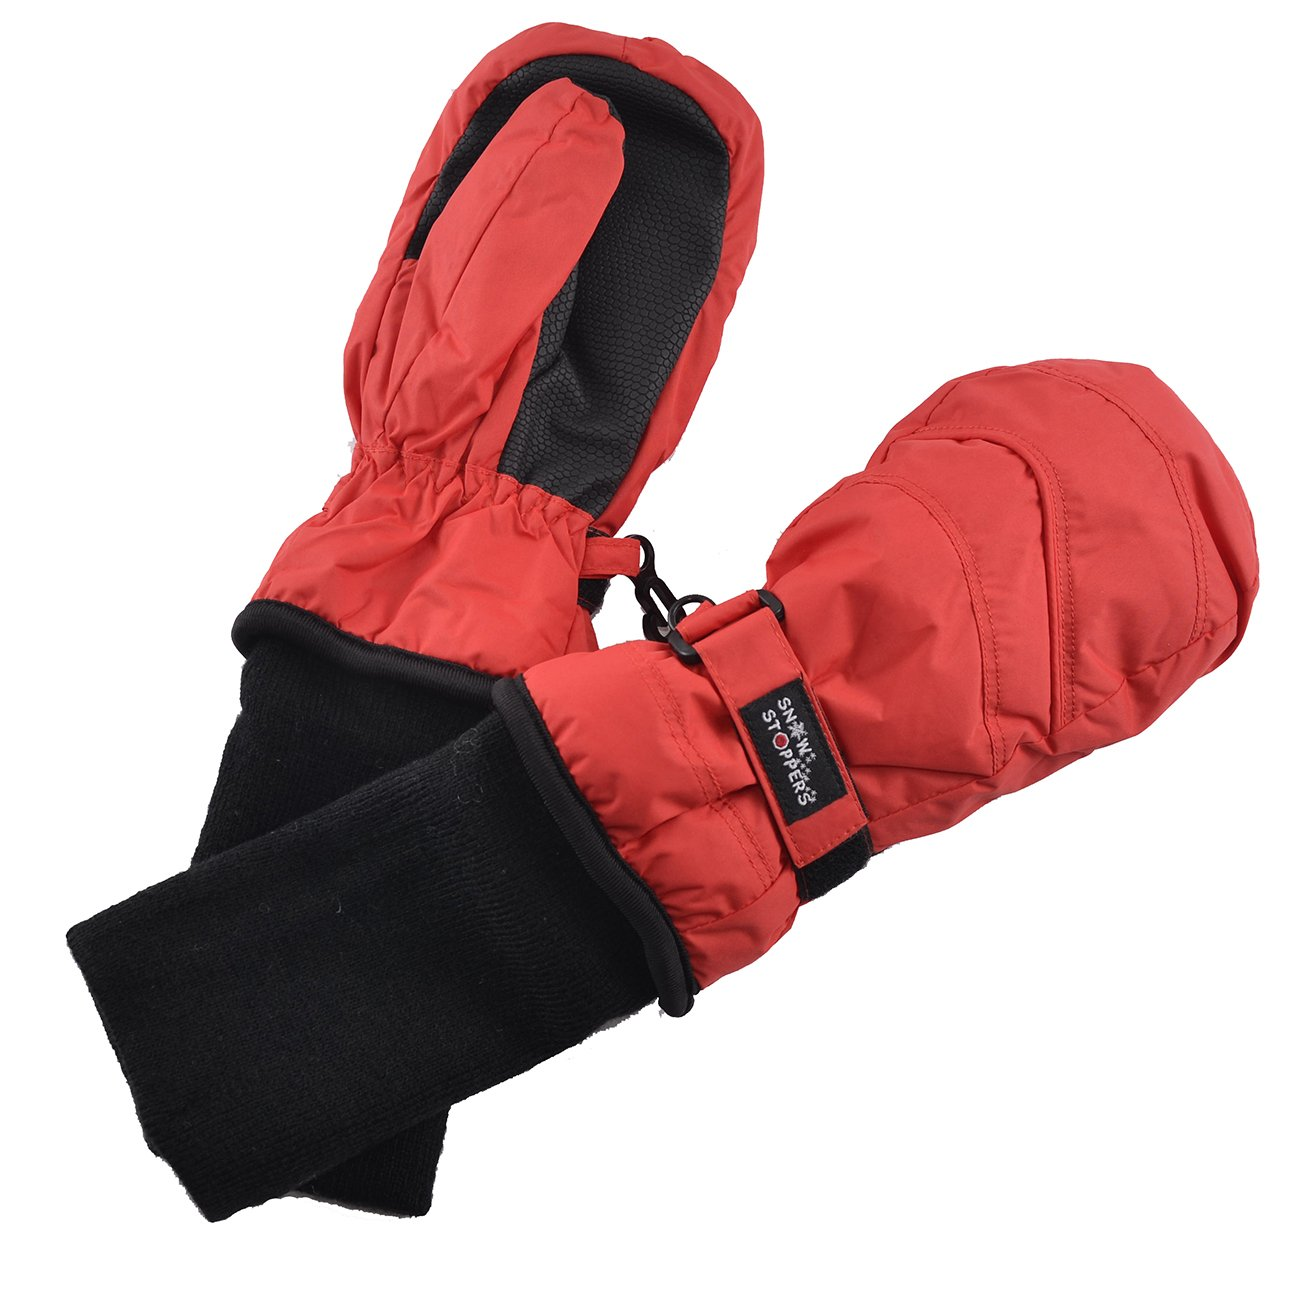 SnowStoppers Kid's Waterproof Stay On Winter Nylon Mittens Small / 1-3 Years Red